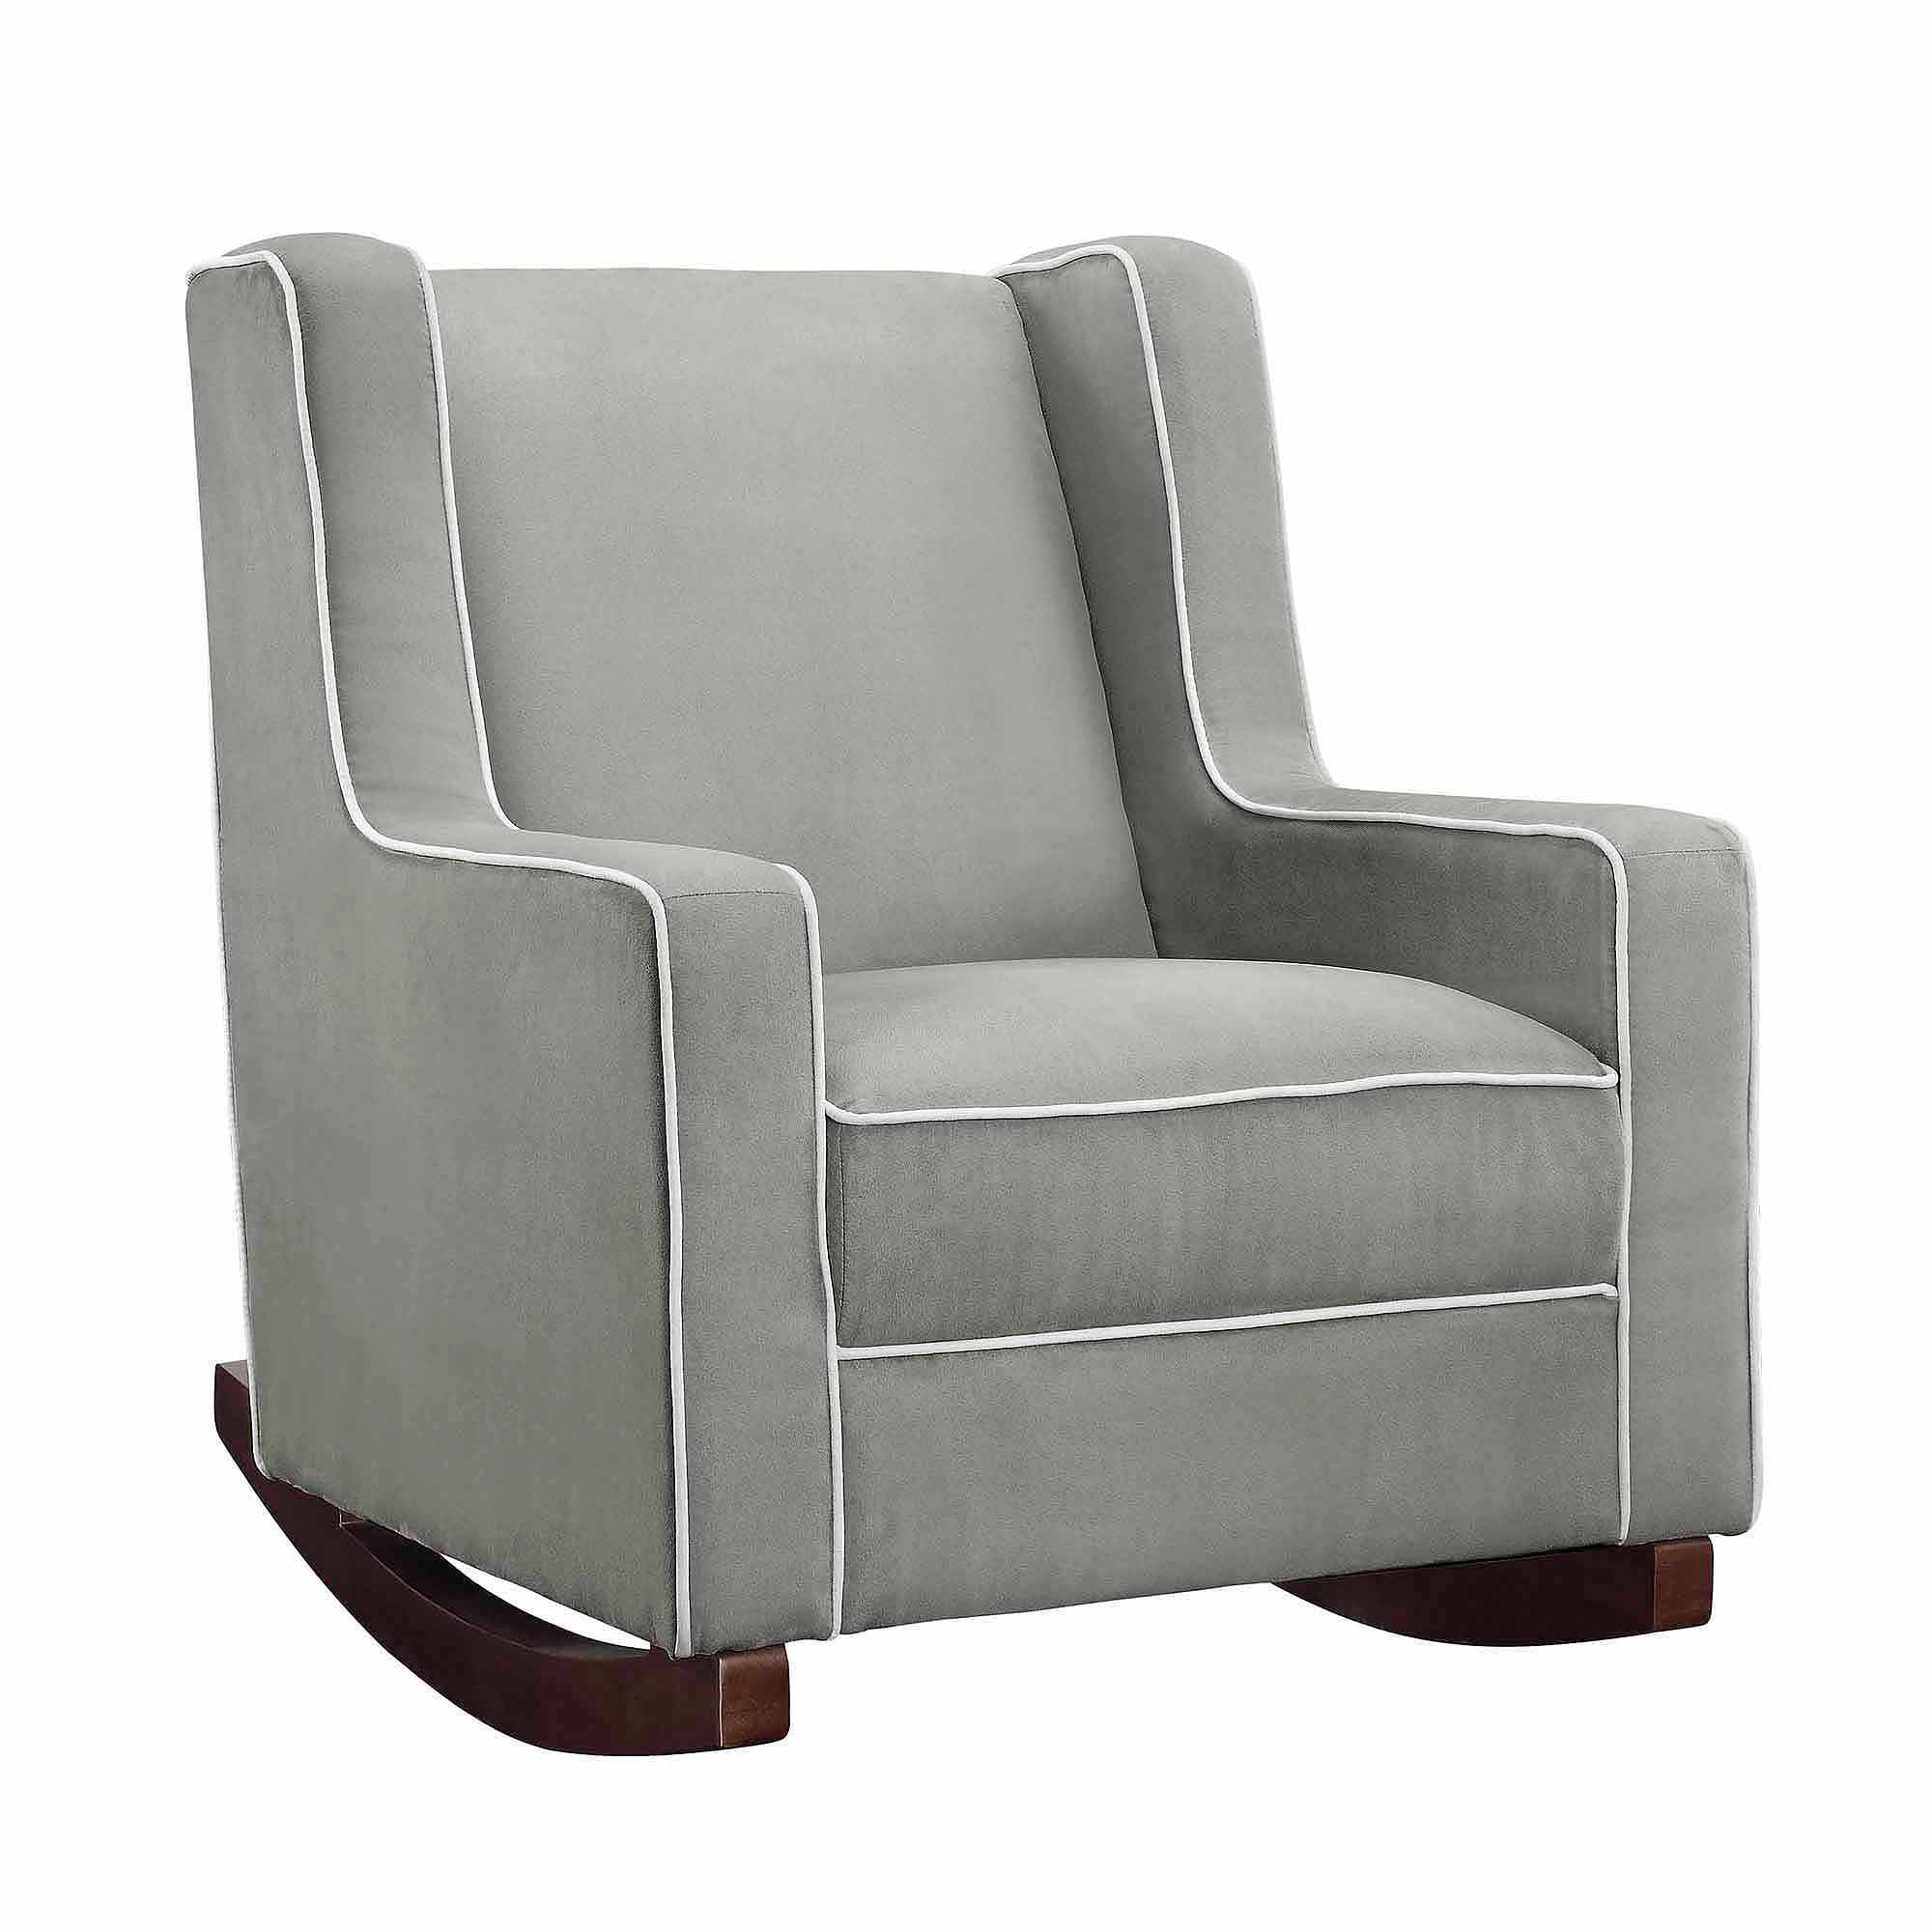 walmart rocking chair glider executive office chairs johannesburg baby relax abby rocker gray com